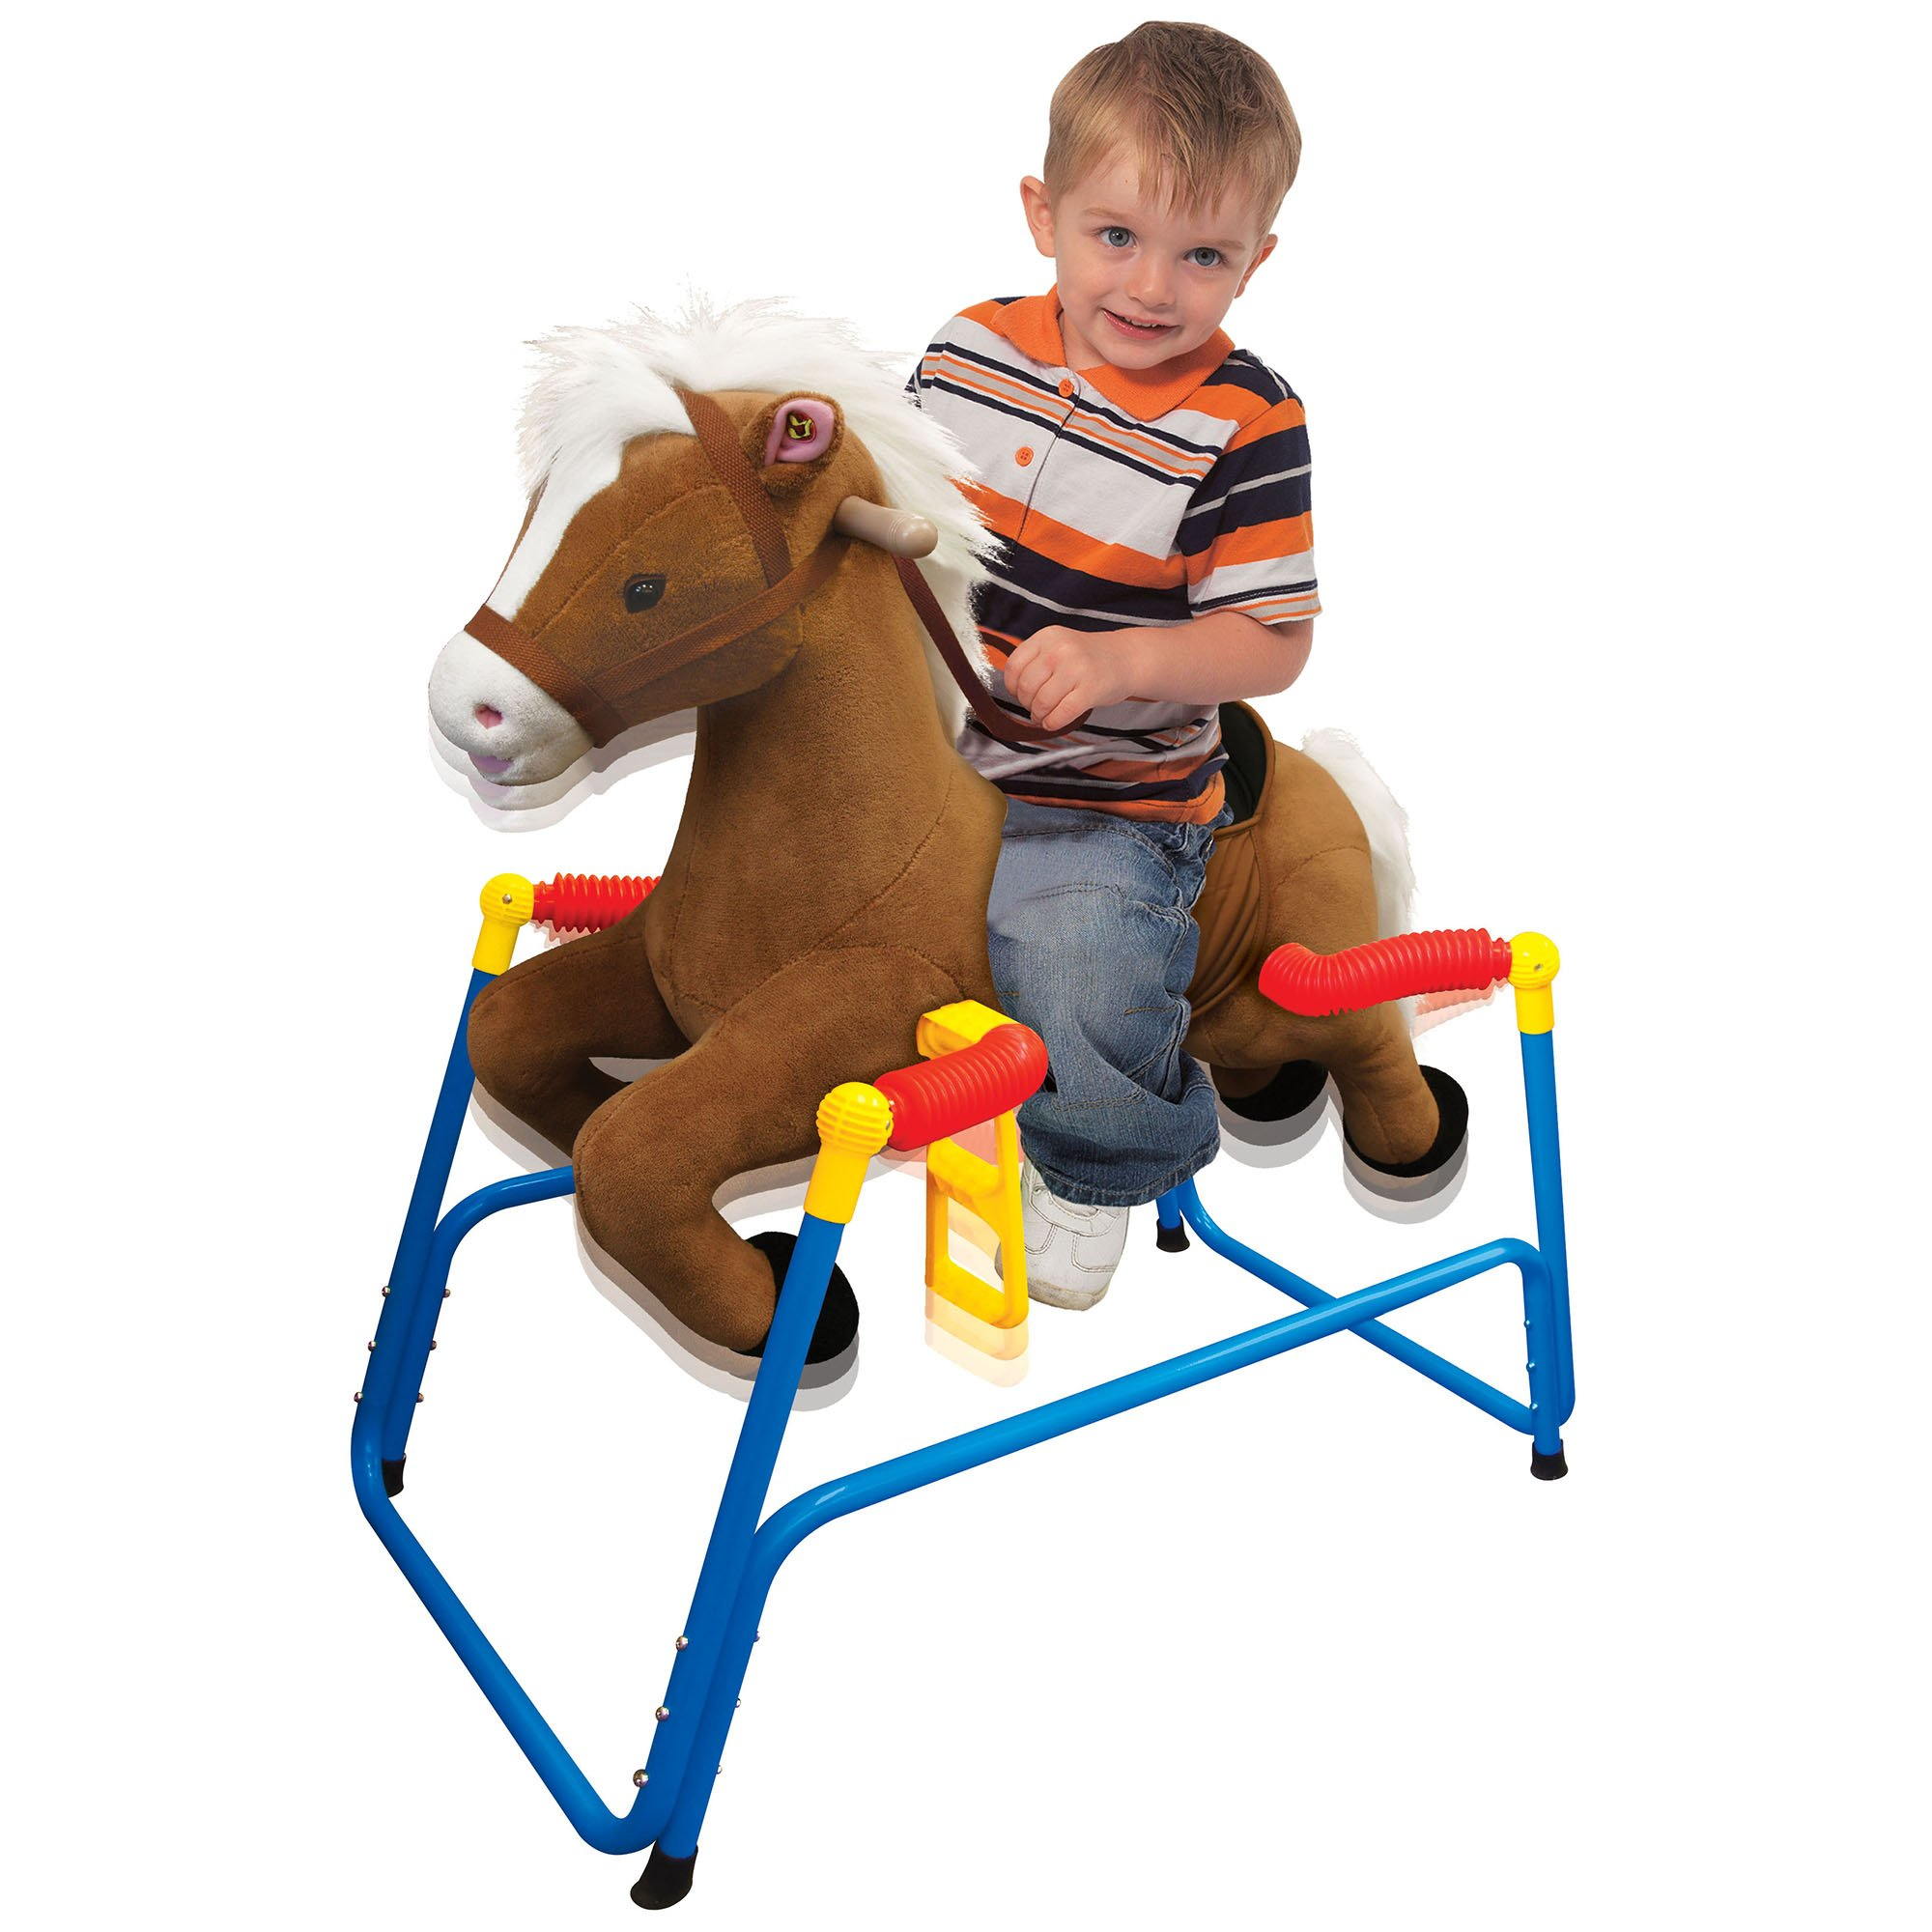 Kiddieland Rocking Plush Bounce n' Ride Pony with Handles, Brown | 044677 by Kiddieland Toys Limited (Image #2)